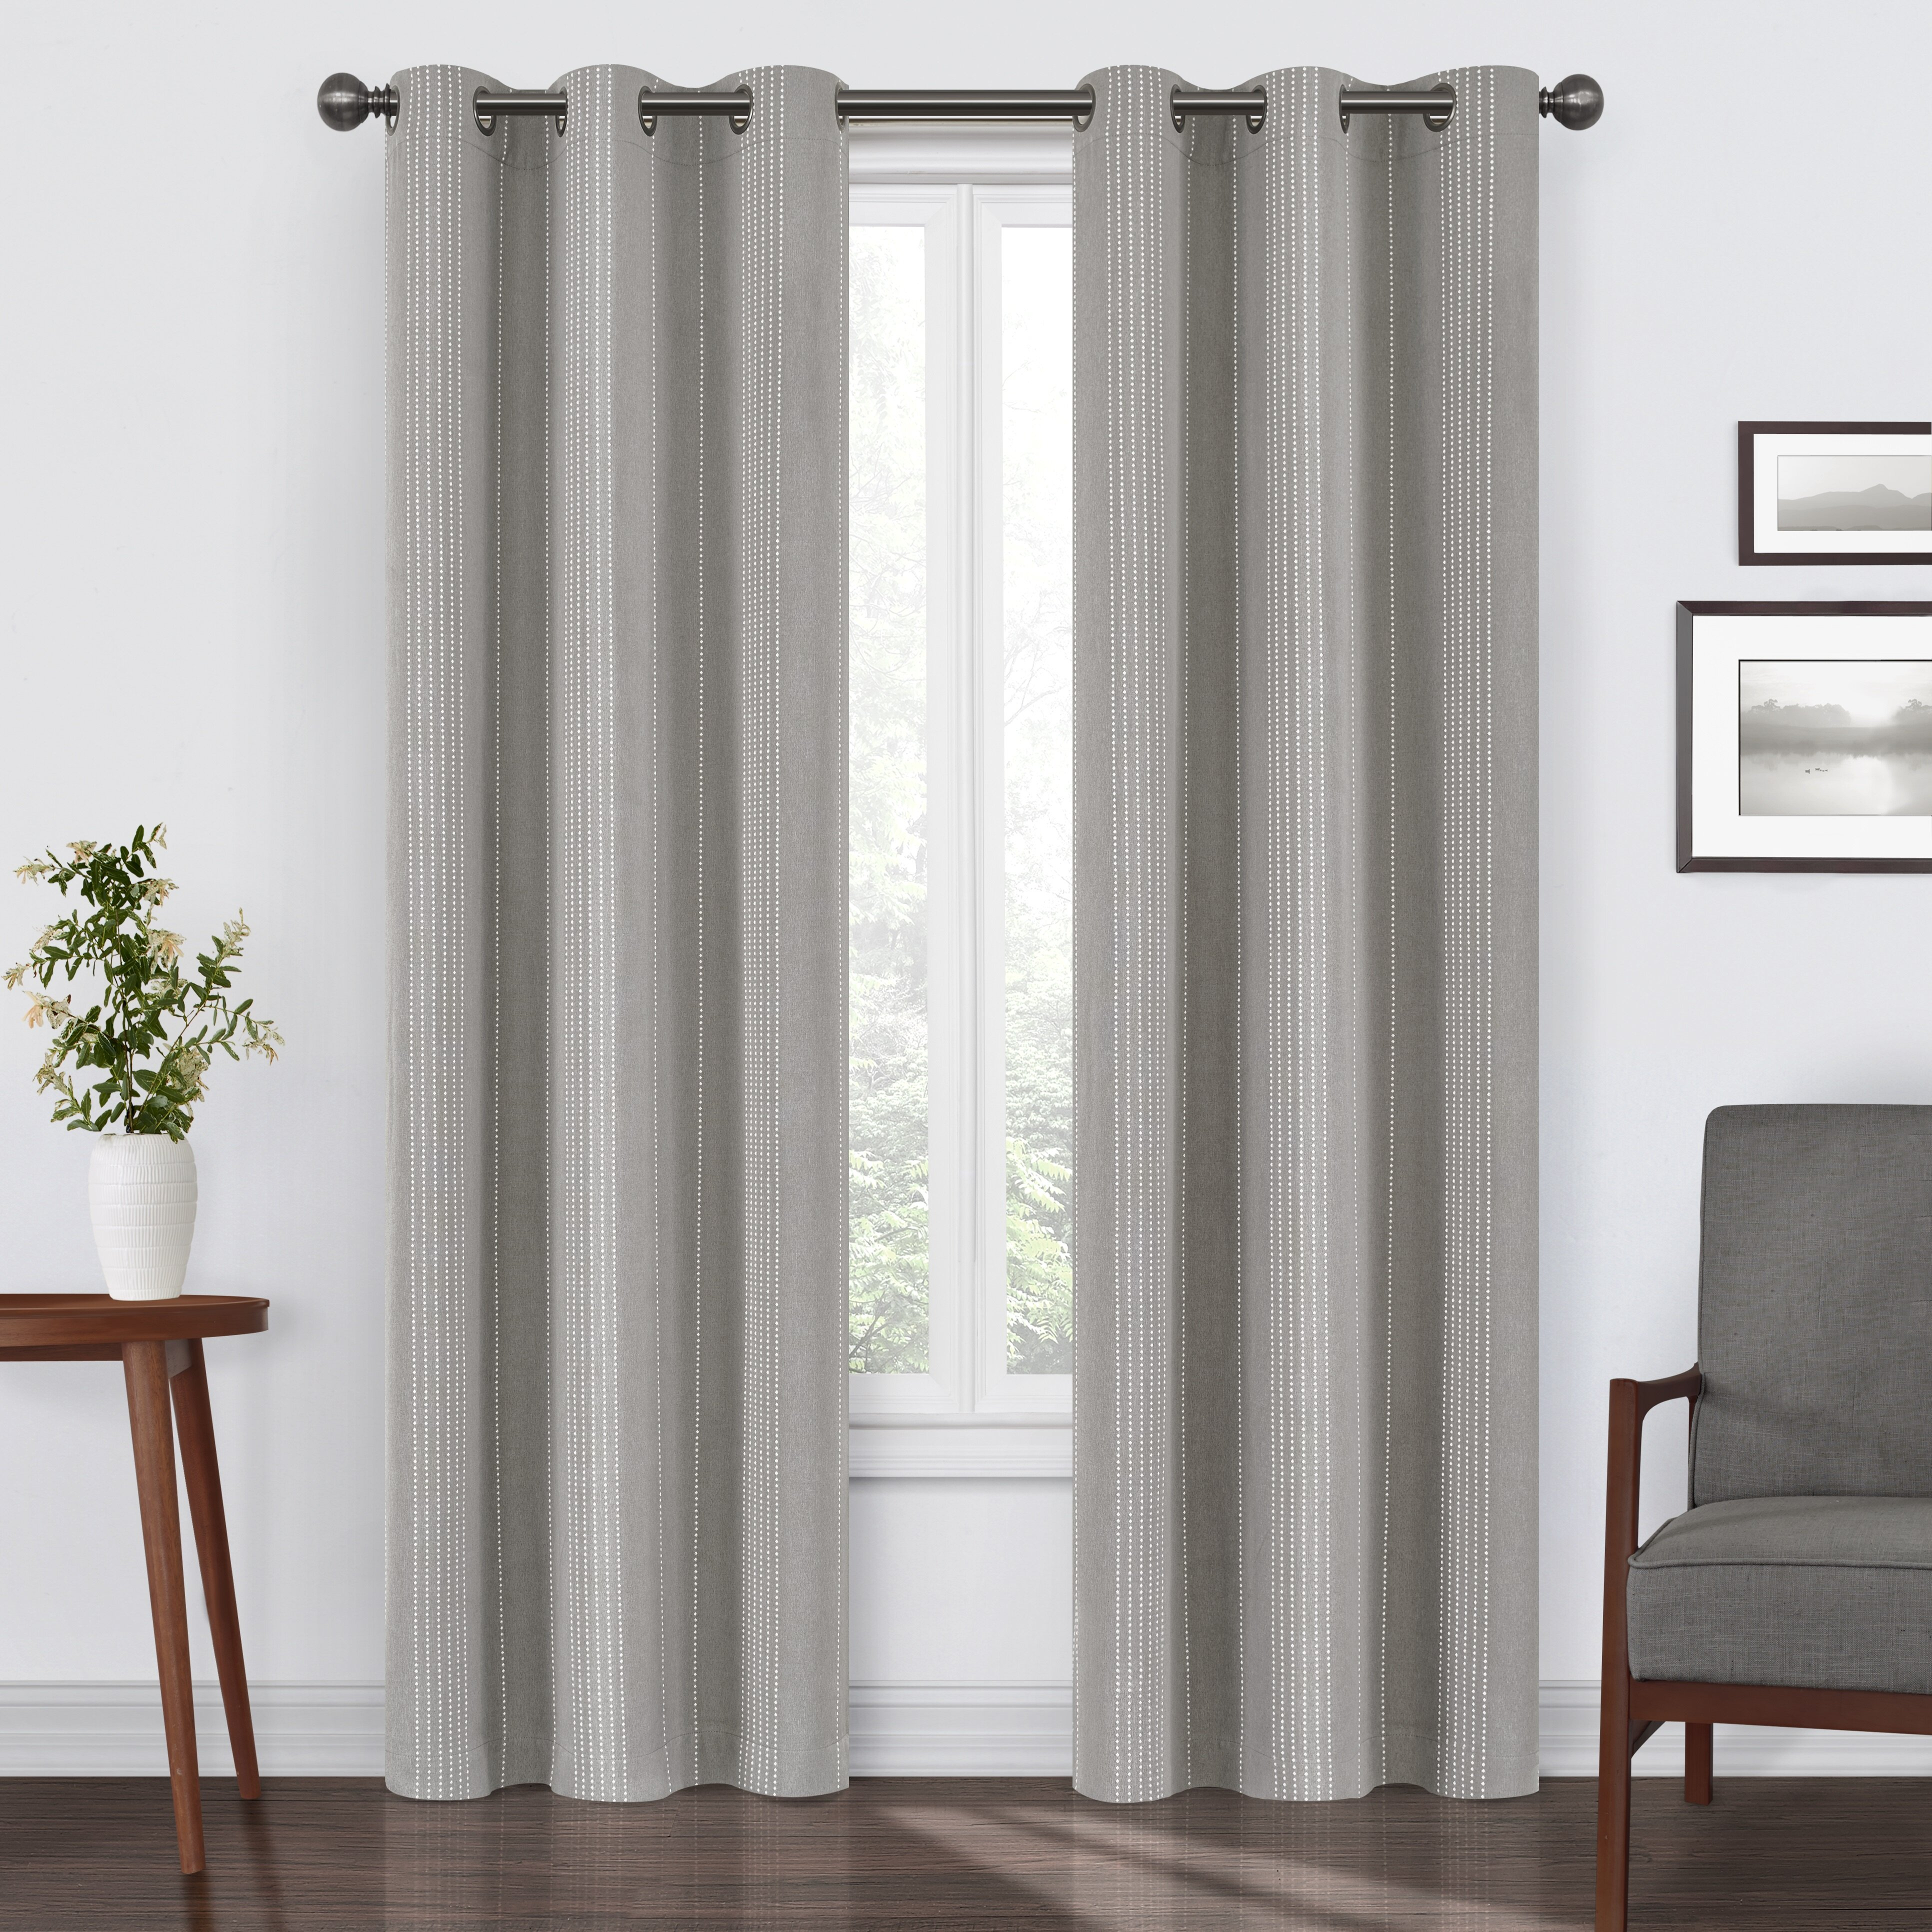 Blackout Striped Curtains Drapes You Ll Love In 2021 Wayfair